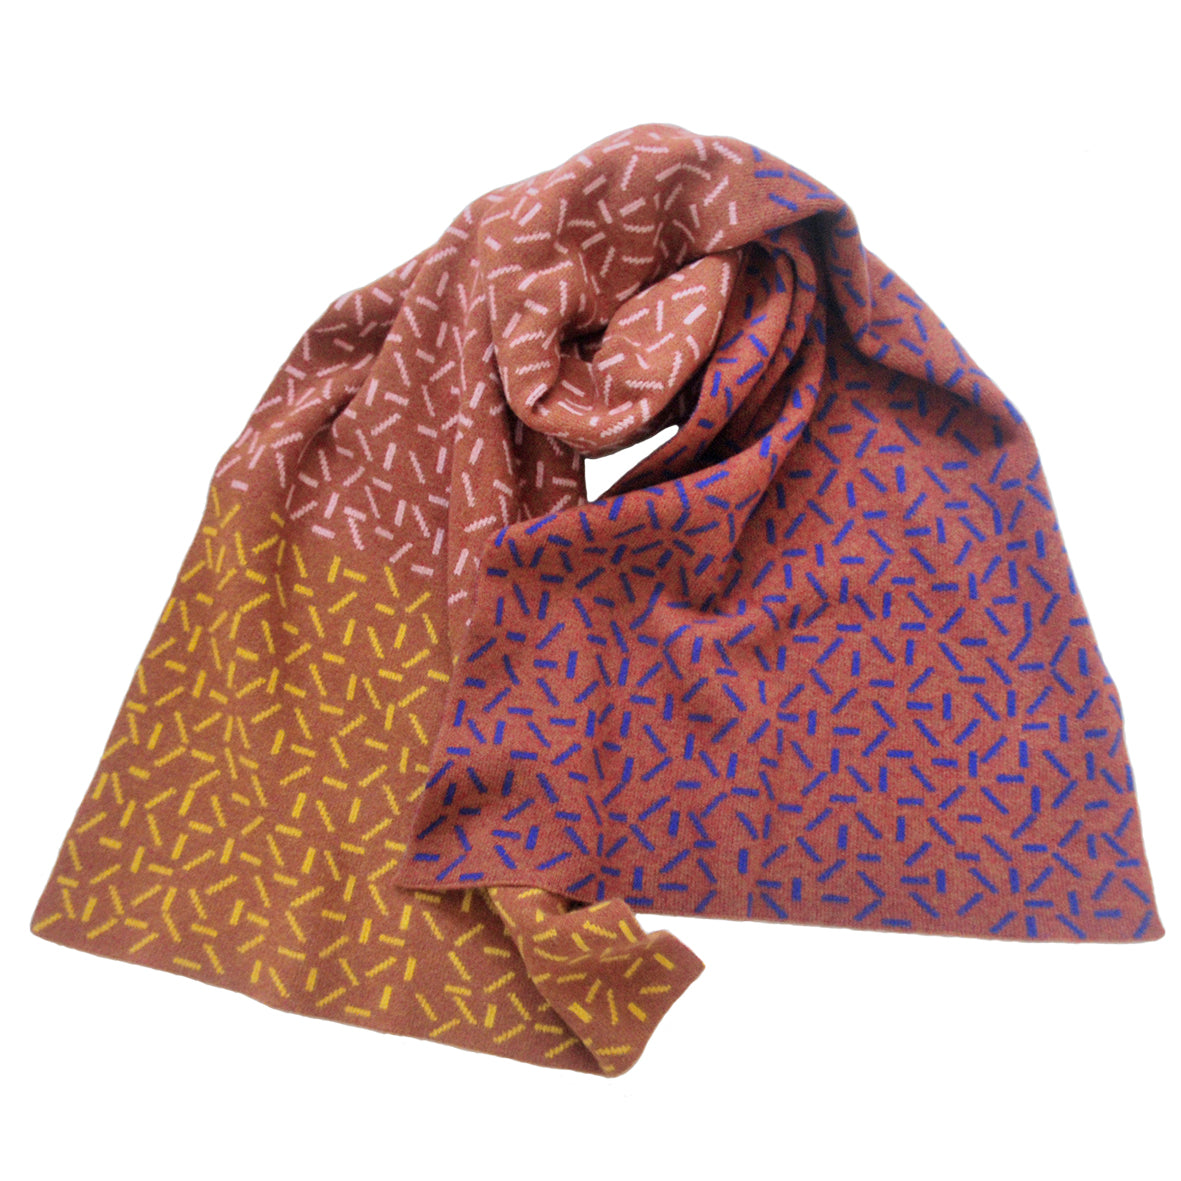 DASH BLANKET SCARF IN BROWN, BLUE, PINK AND YELLOW